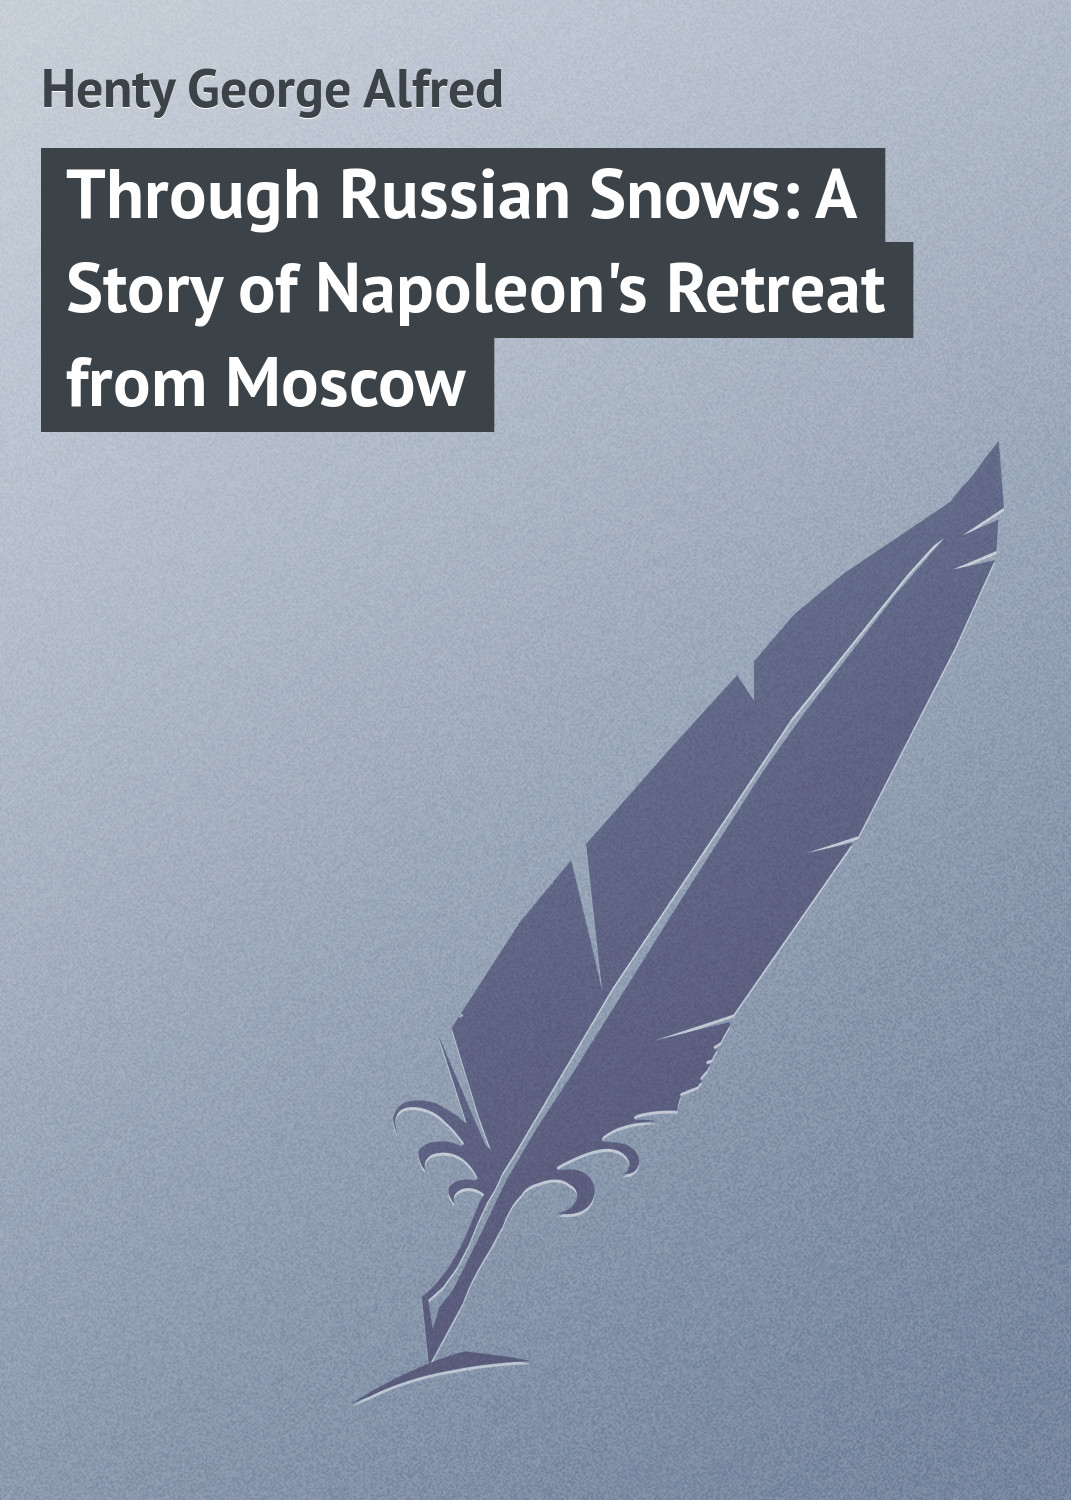 Henty George Alfred Through Russian Snows: A Story of Napoleon's Retreat from Moscow henty george alfred condemned as a nihilist a story of escape from siberia